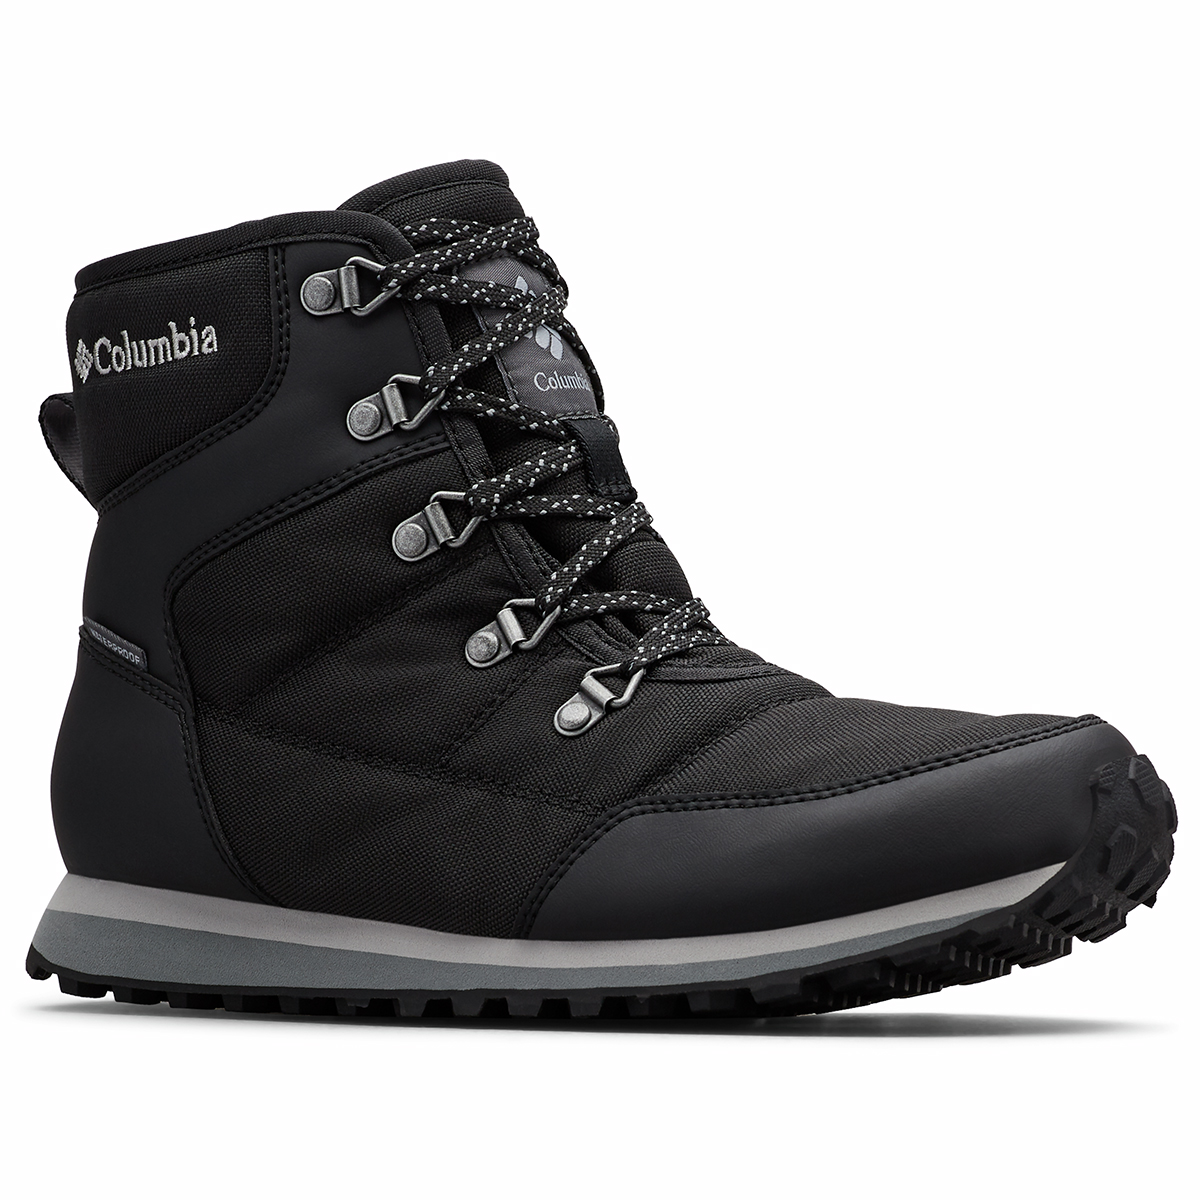 Columbia Women's Insulated Wp Wheatleigh Shorty Boots - Black, 8.5